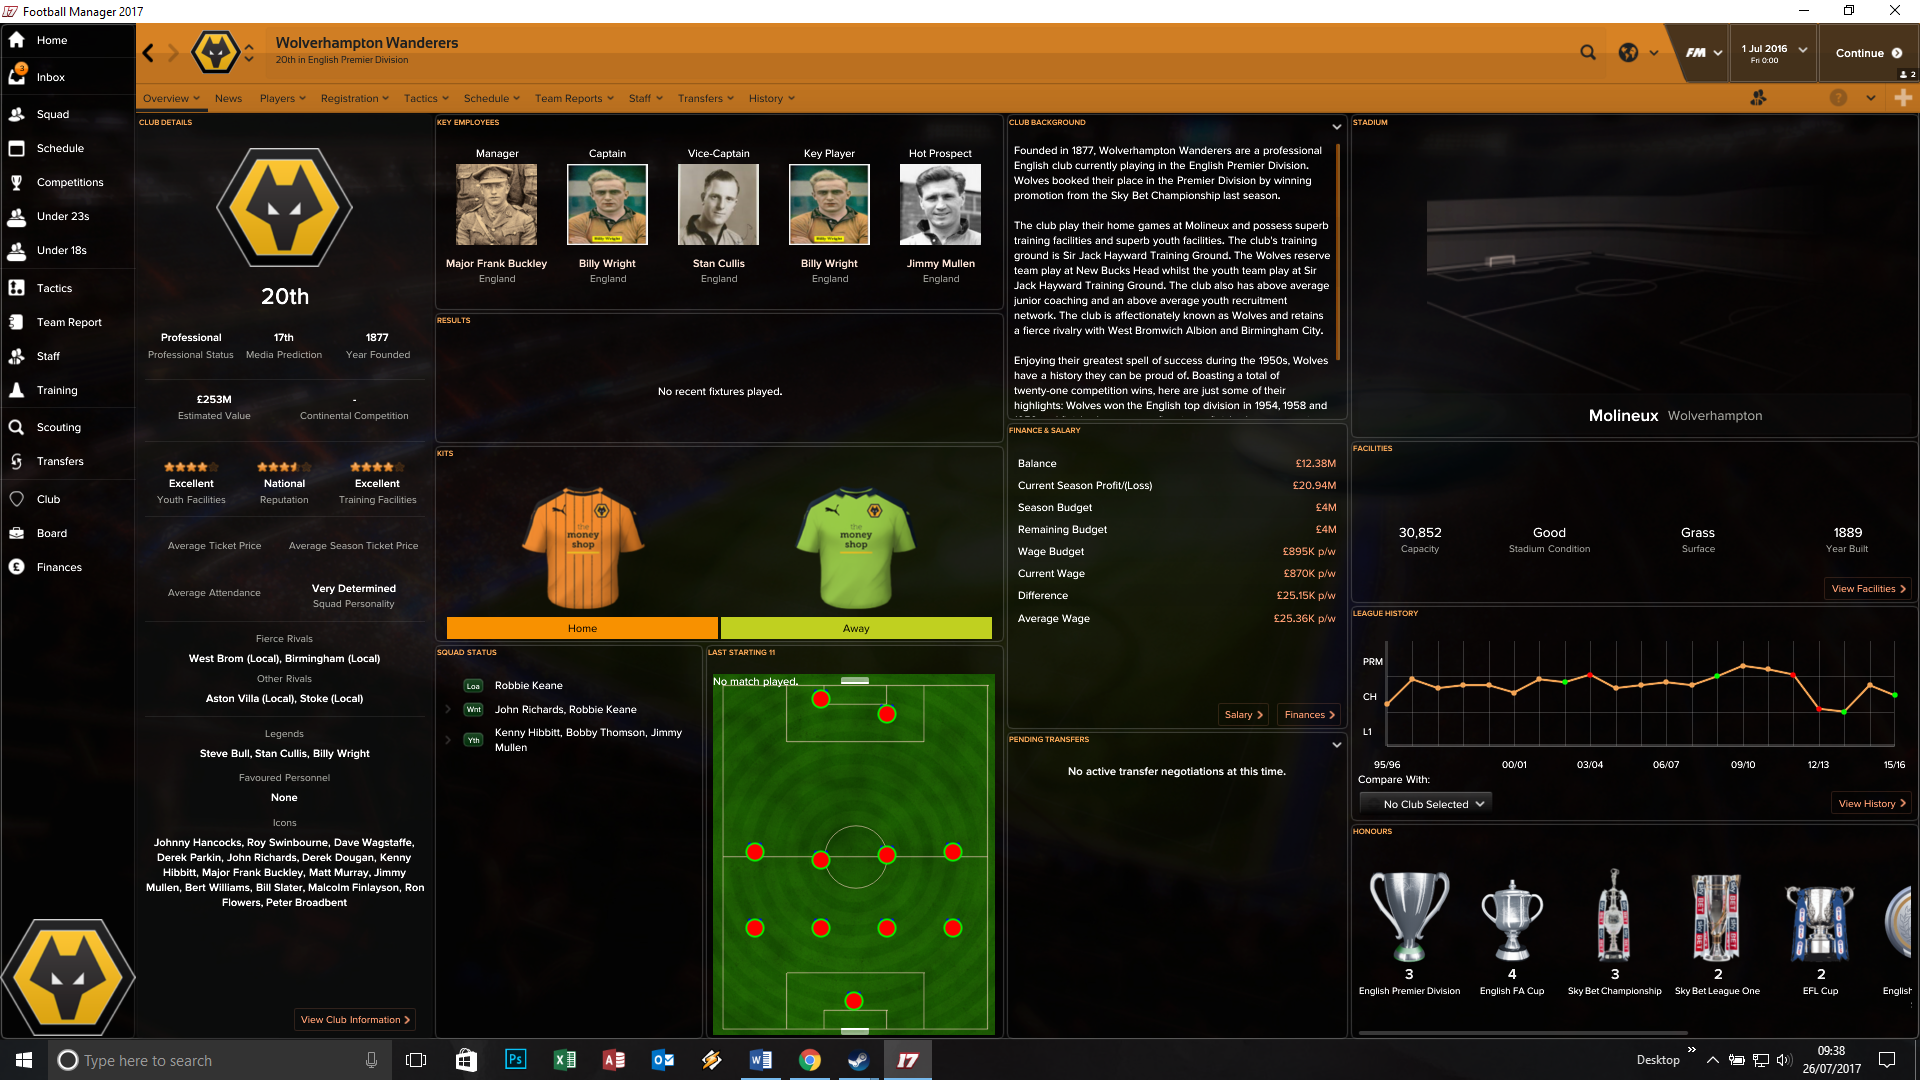 Wolves_Front.png